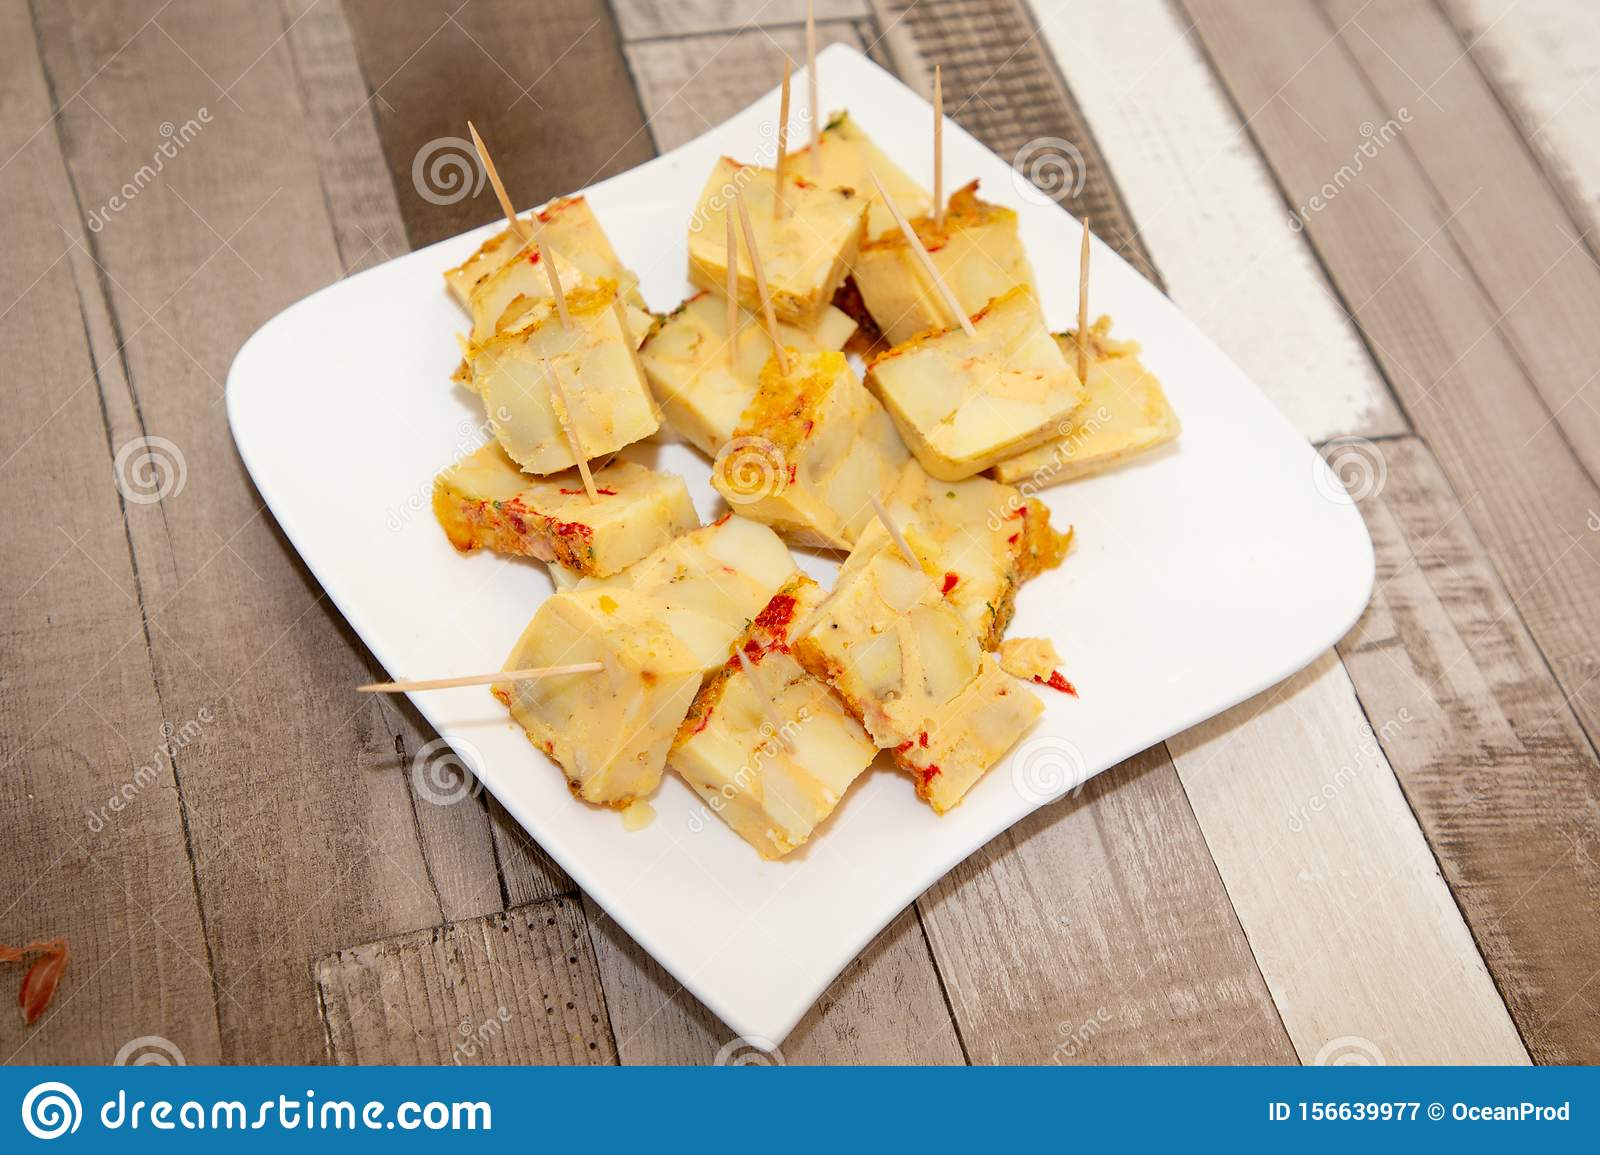 Appetizers For Festive Events Unique Occasions Finger Food In Wood Table Stock Image Image Of Canape Delicious 156639977